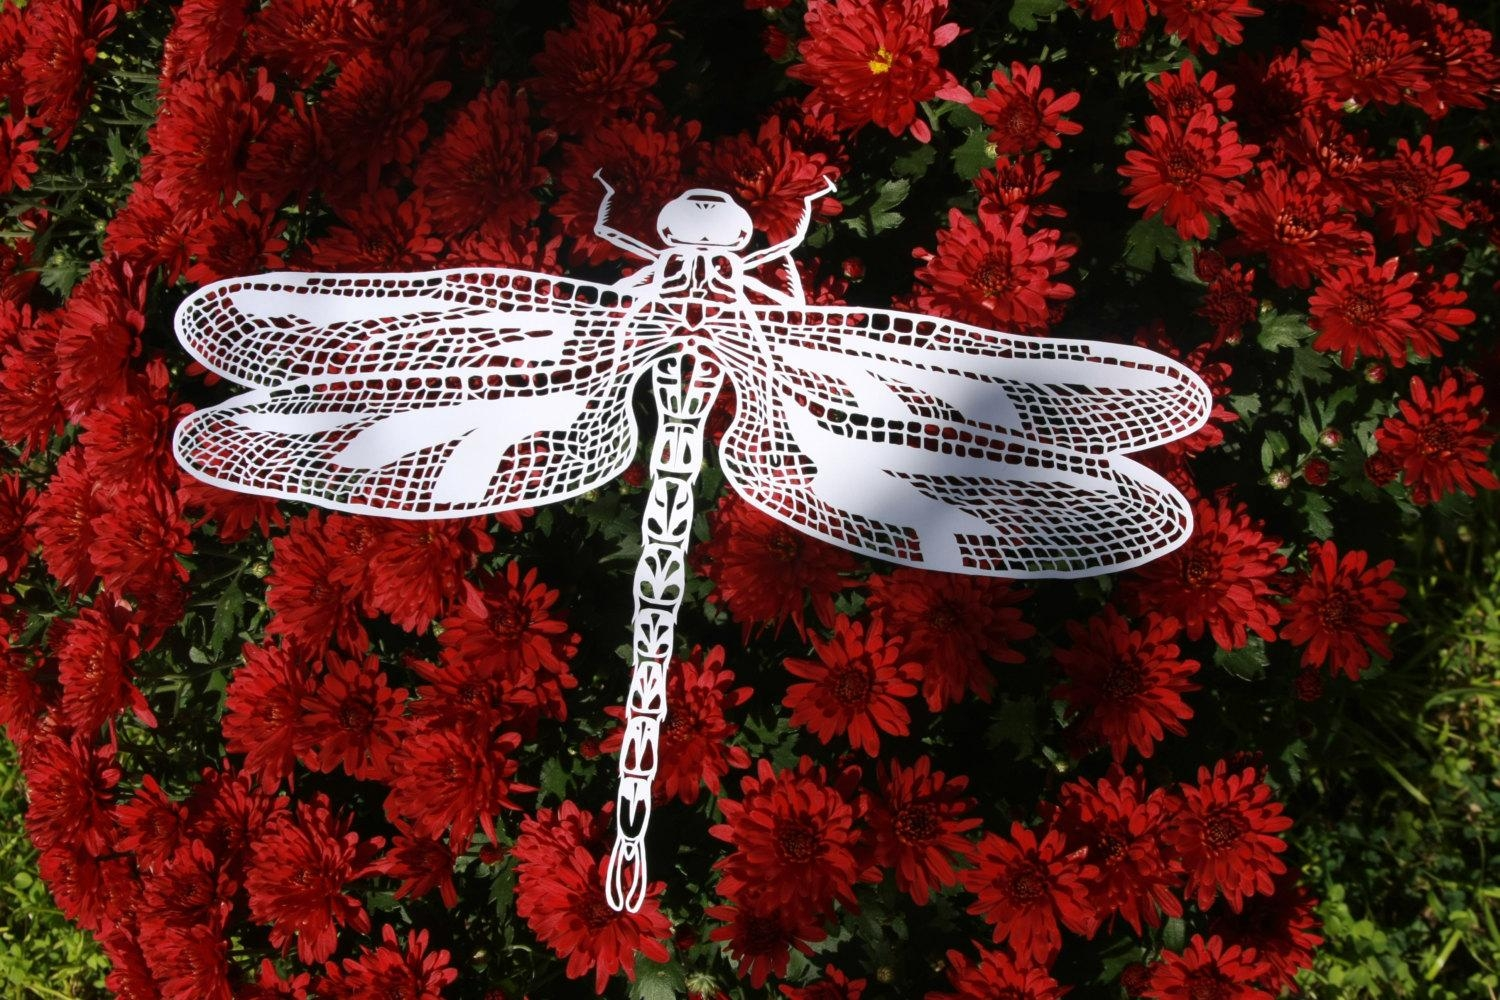 Paper Cut Dragonflyhandmade Paper Cut Dragonfly Insect Wall Intended For Insect Wall Art (Image 13 of 20)